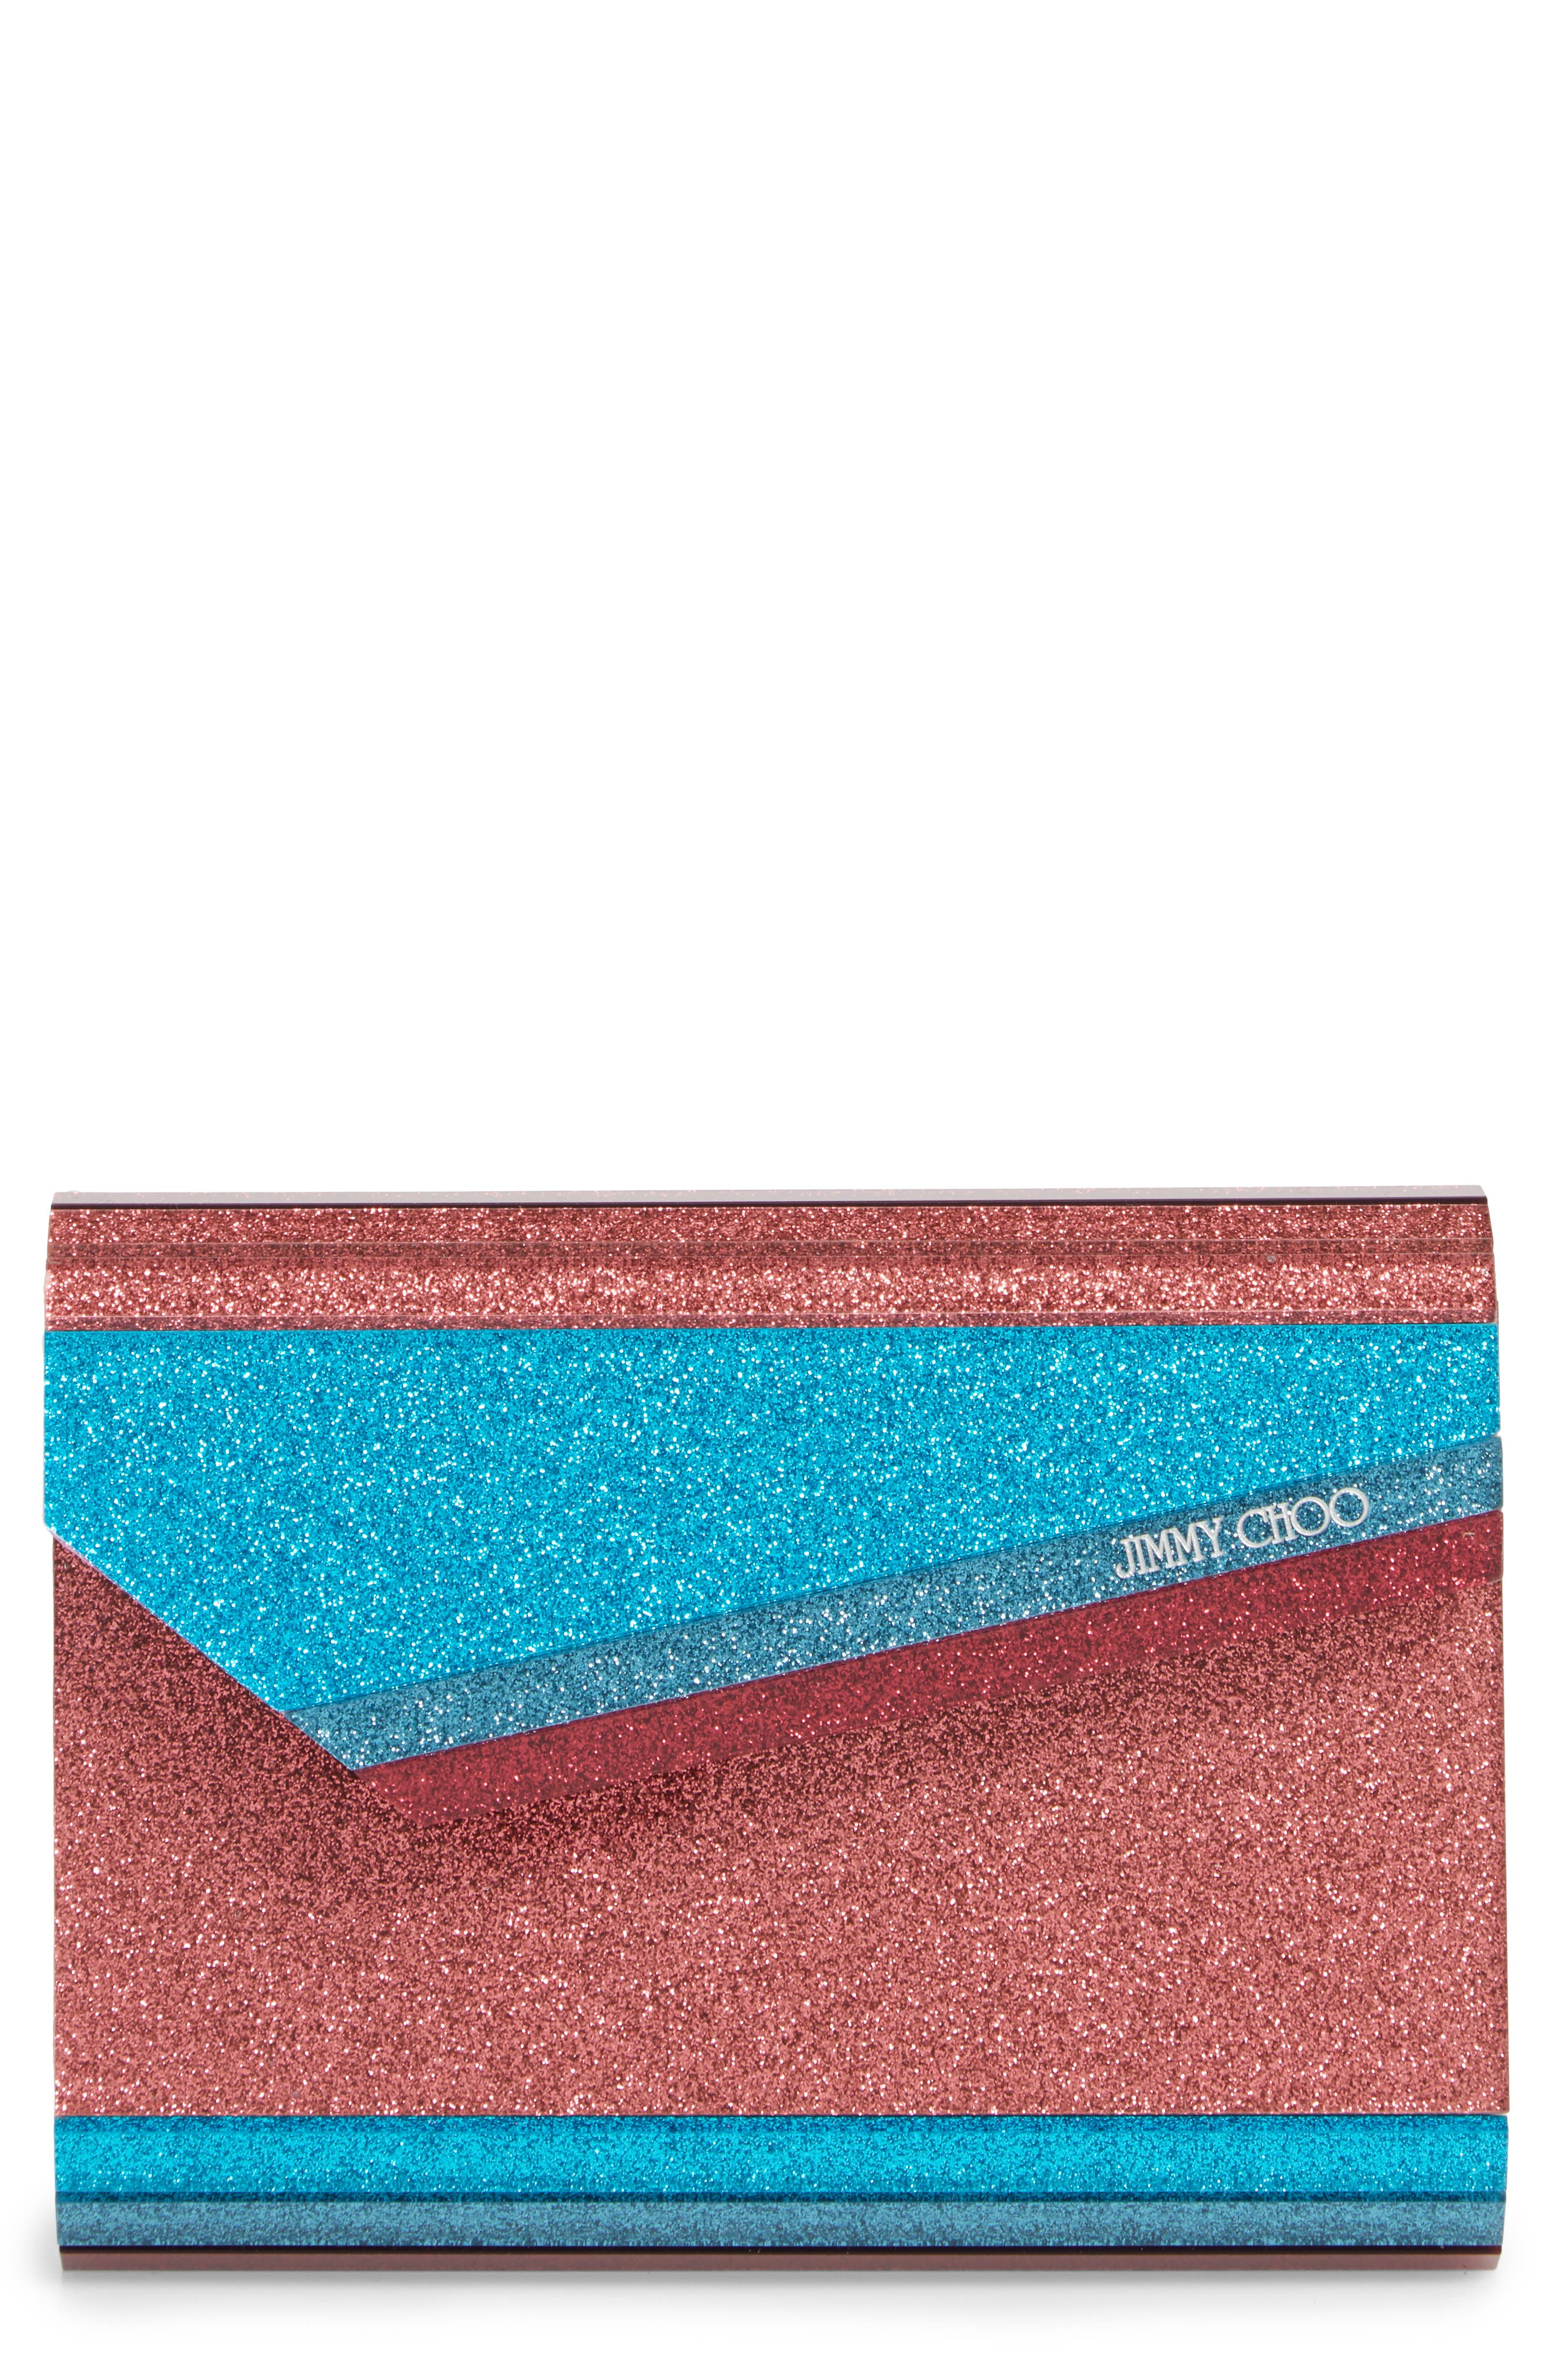 JIMMY CHOO Candy Colorblock Glitter Clutch, Main, color, RASPBERRY MIX